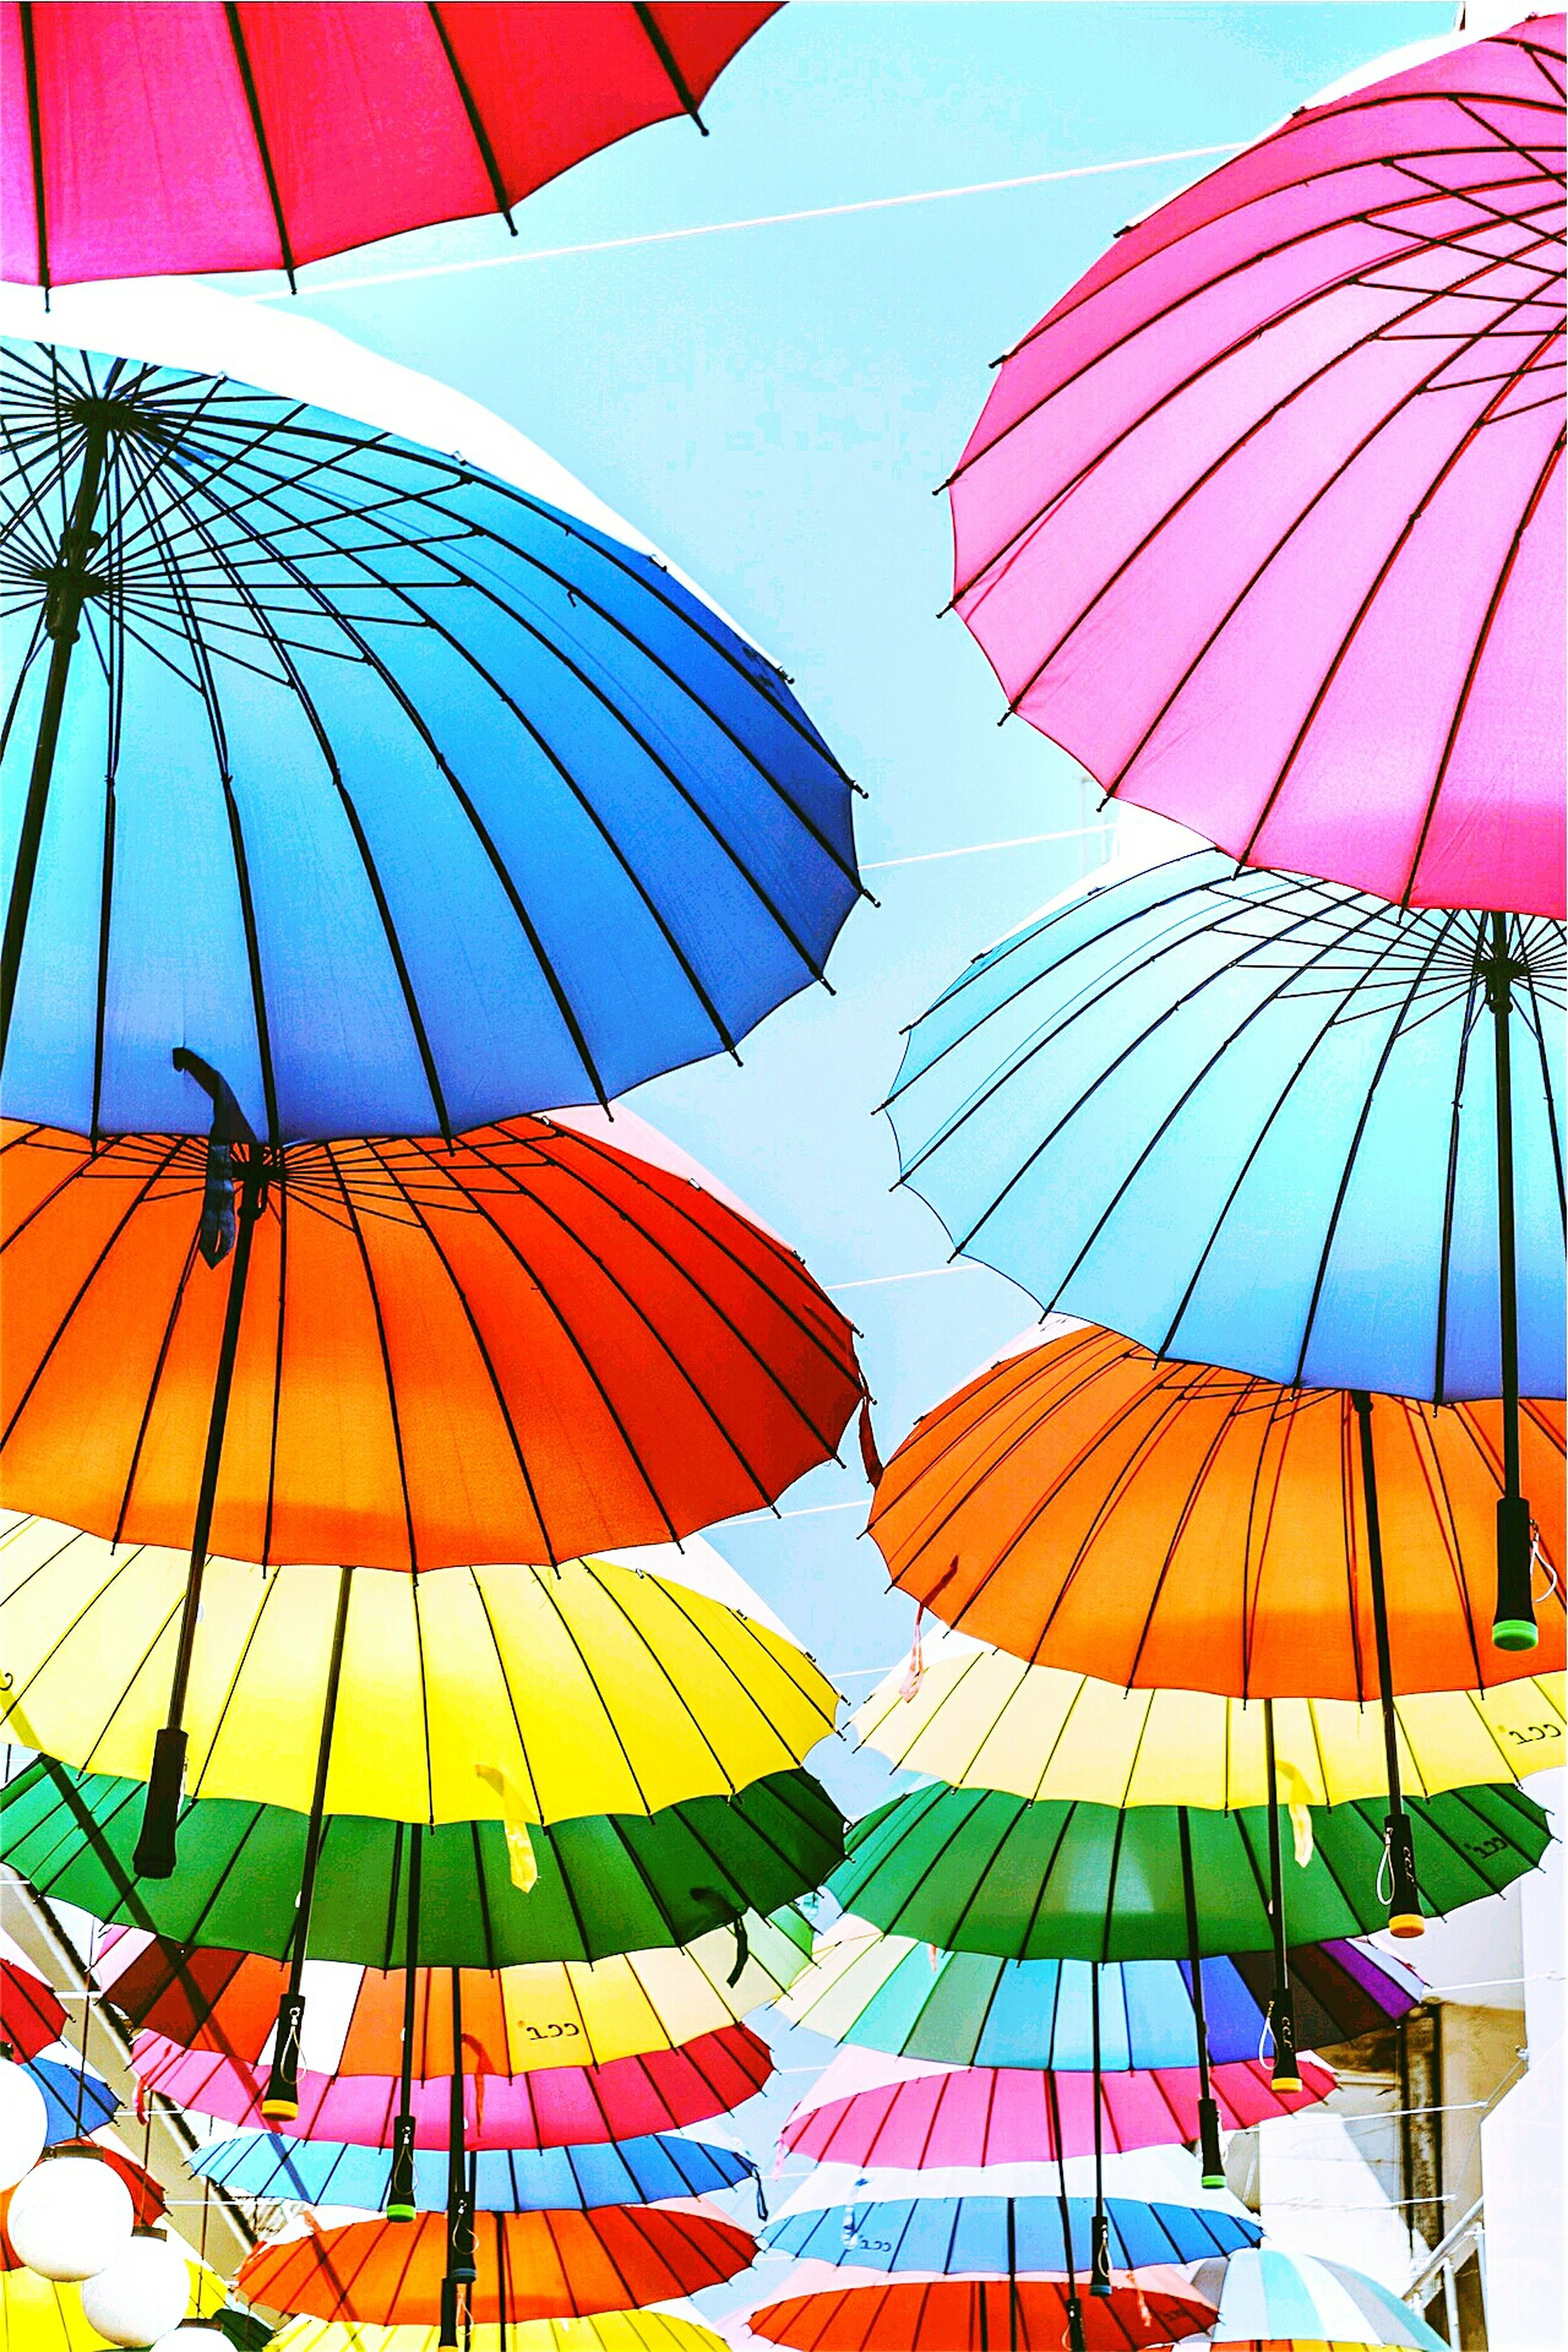 umbrella, multi colored, low angle view, parasol, clear sky, beach umbrella, sky, sunshade, colorful, flag, hanging, protection, day, amusement park, decoration, pattern, blue, celebration, hot air balloon, outdoors